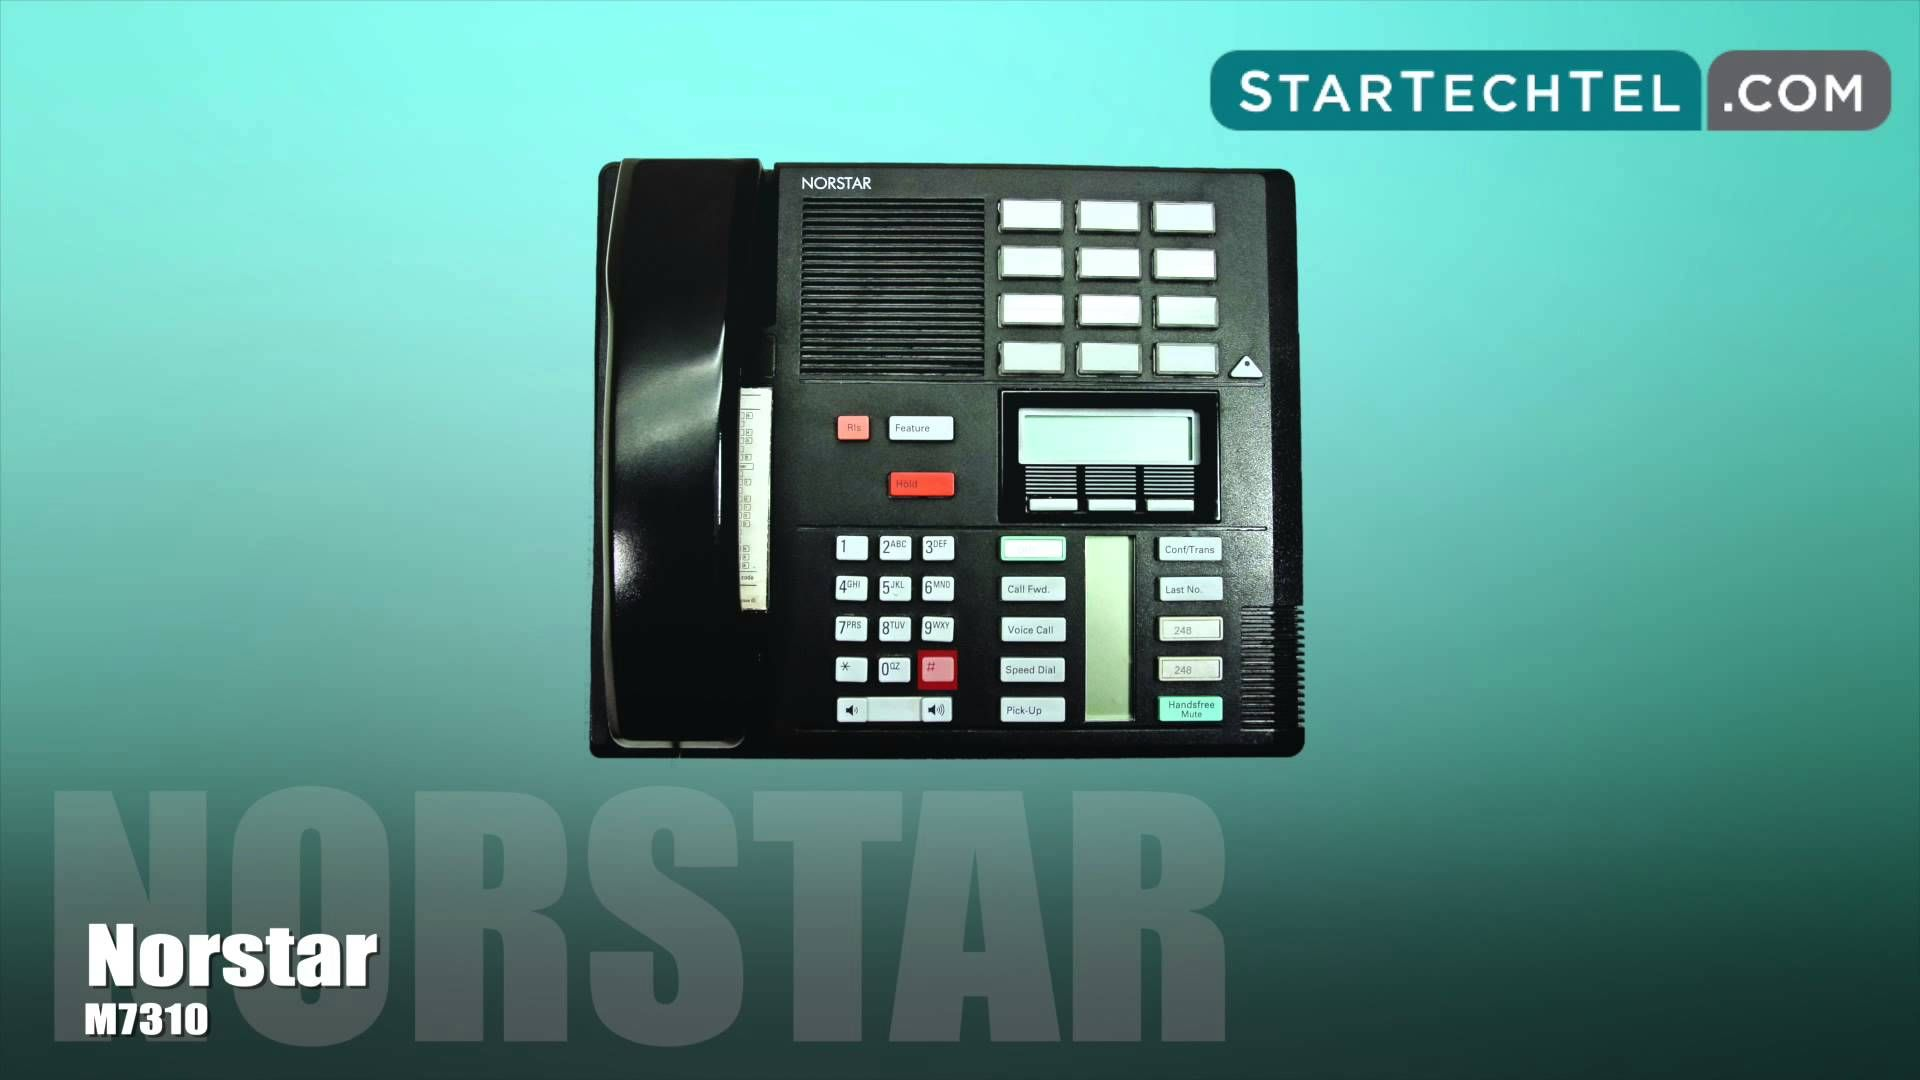 How To Turn On/Off The Auto Attendant On The Norstar M7310 Phone